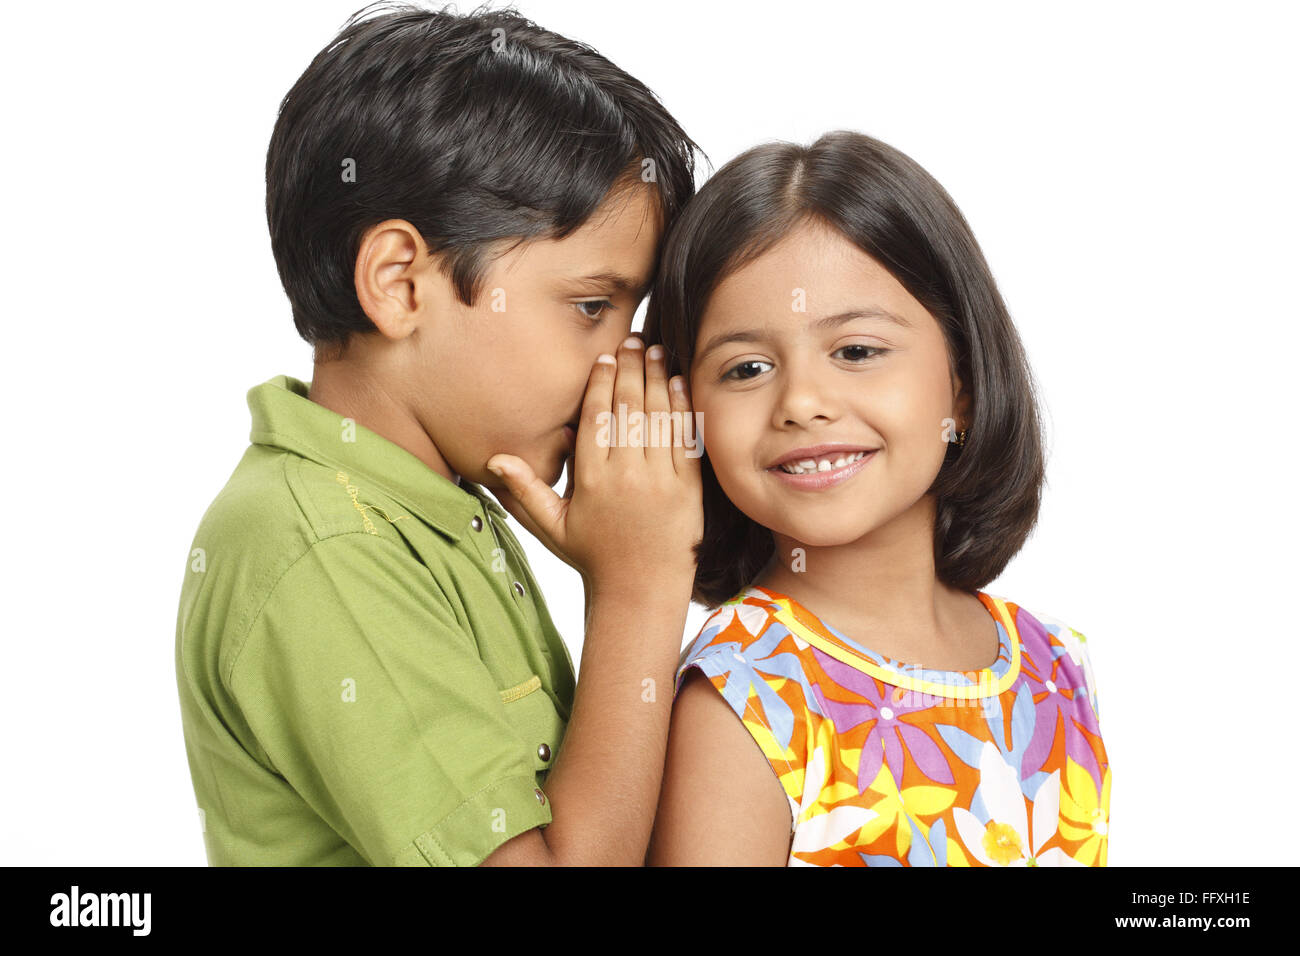 Ten year old boy whispering something in eight year old girl's ear MR# 703U,703V Stock Photo